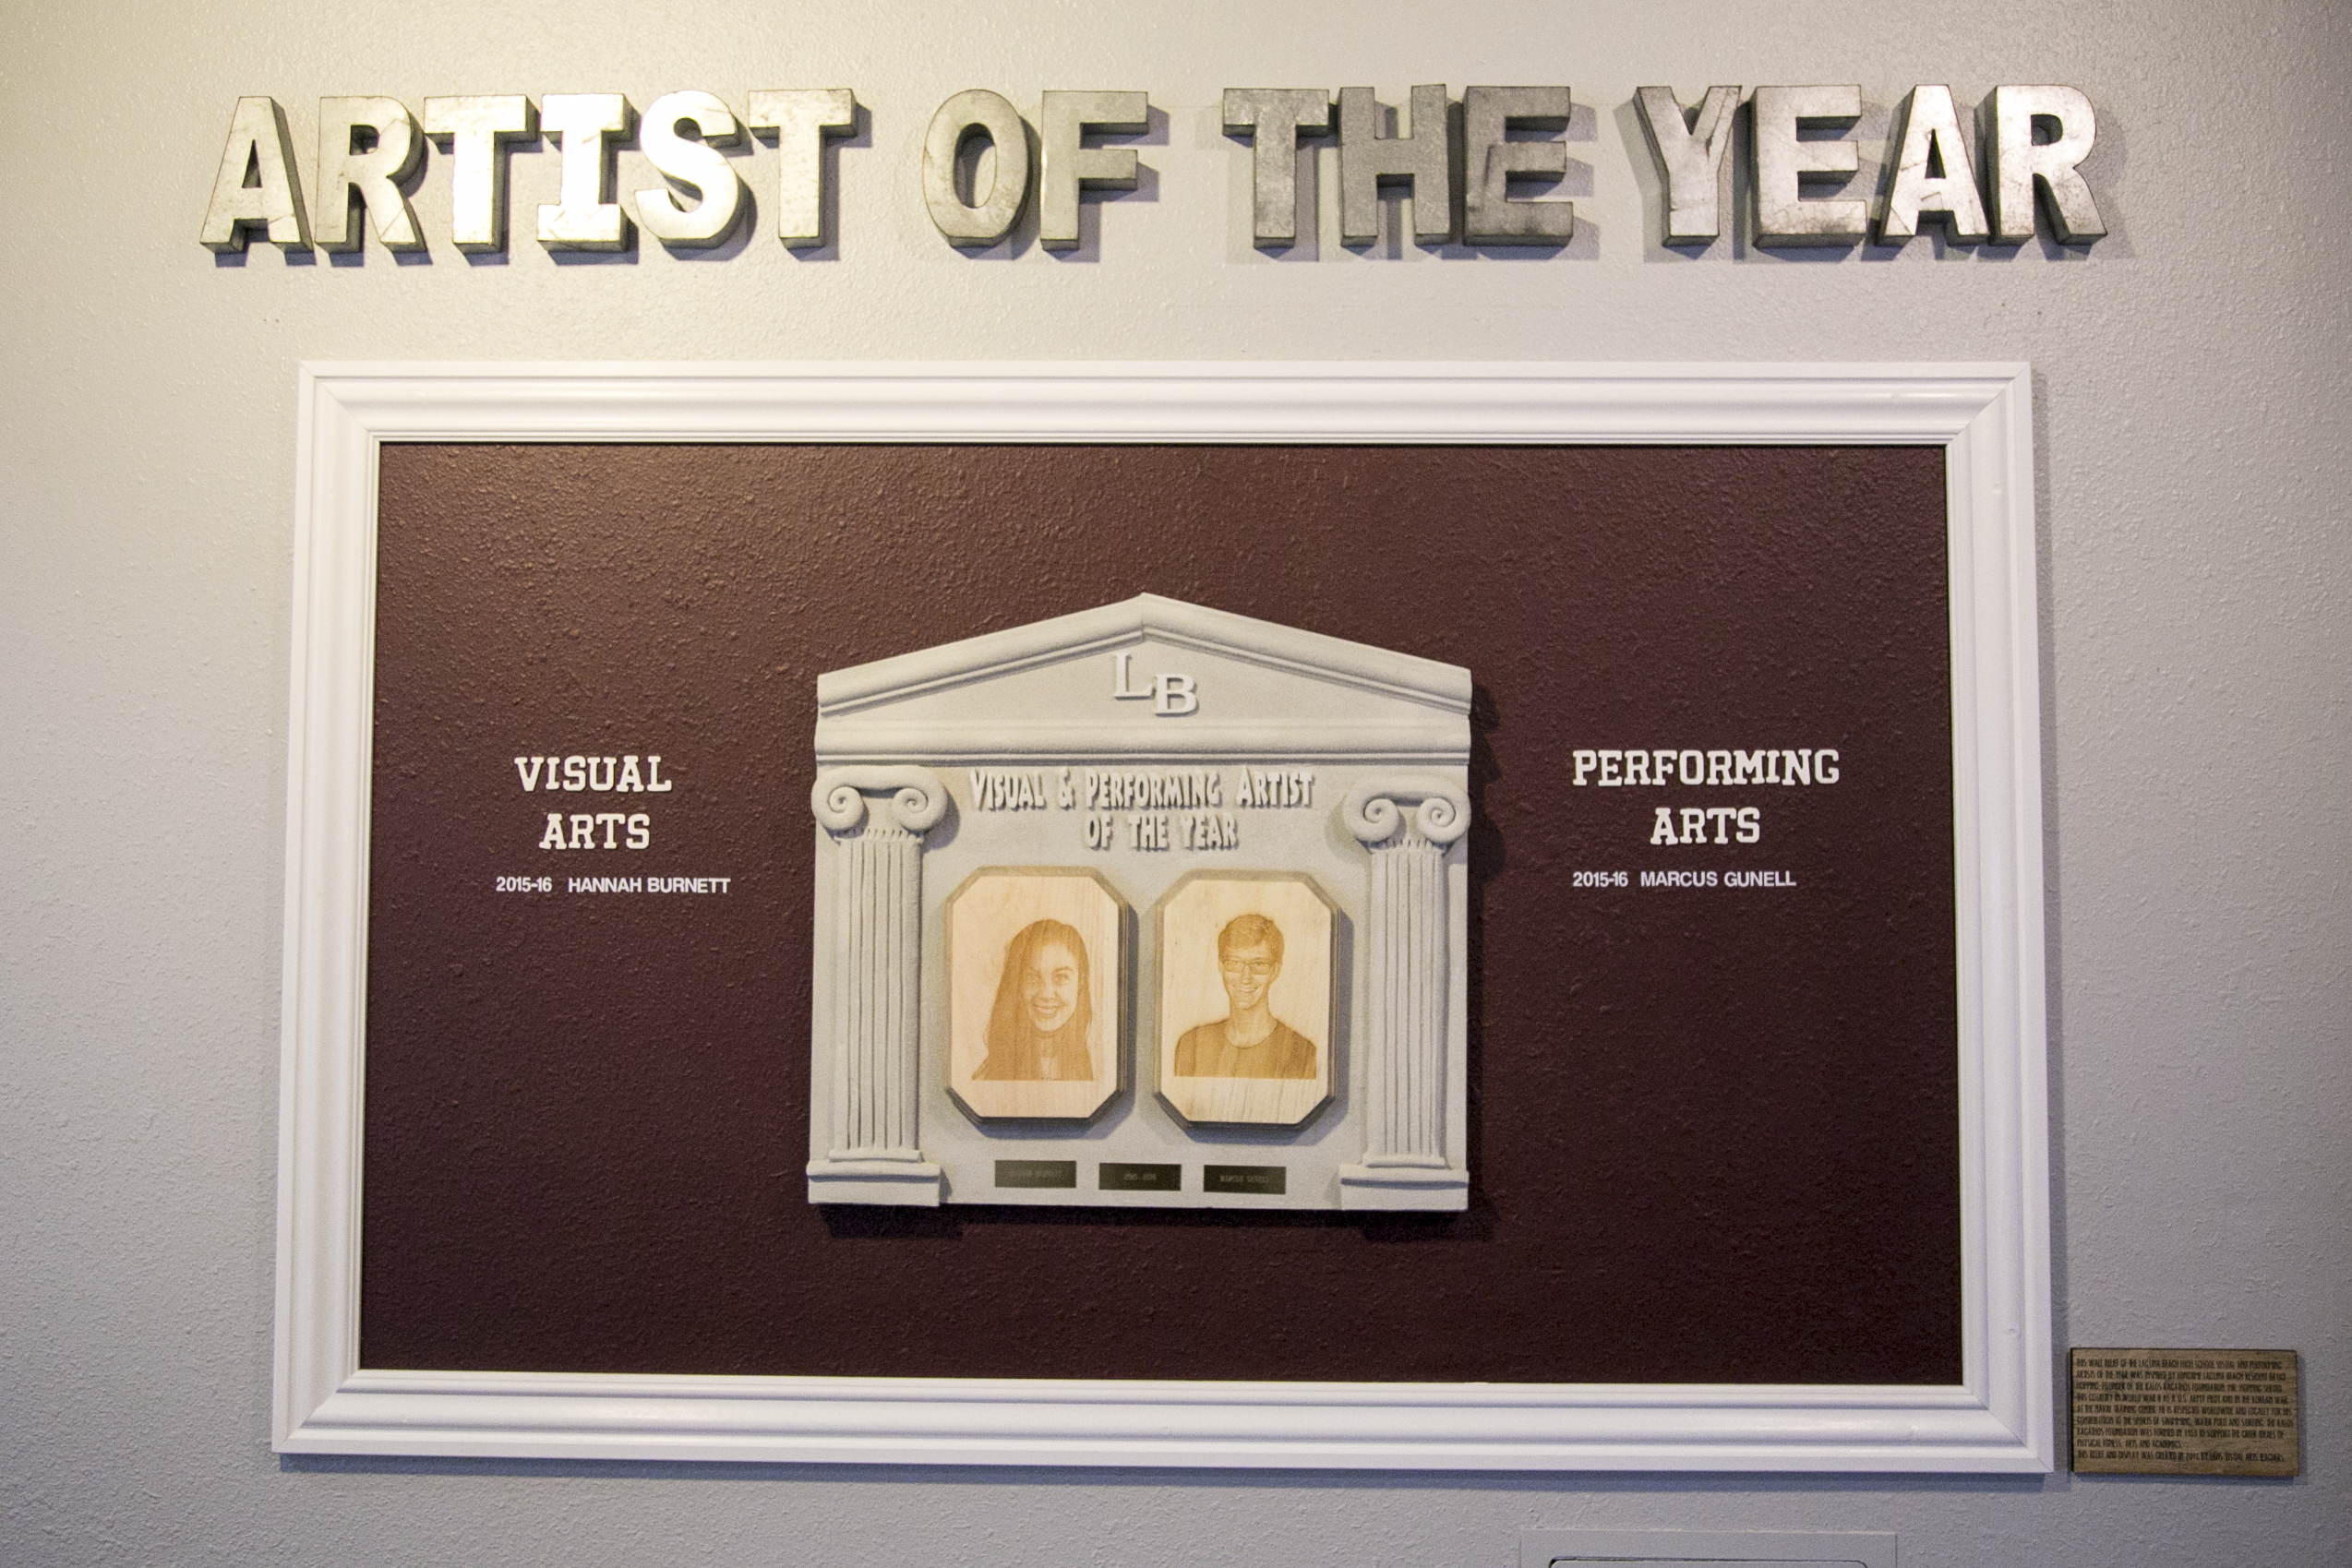 Artist of the Year display